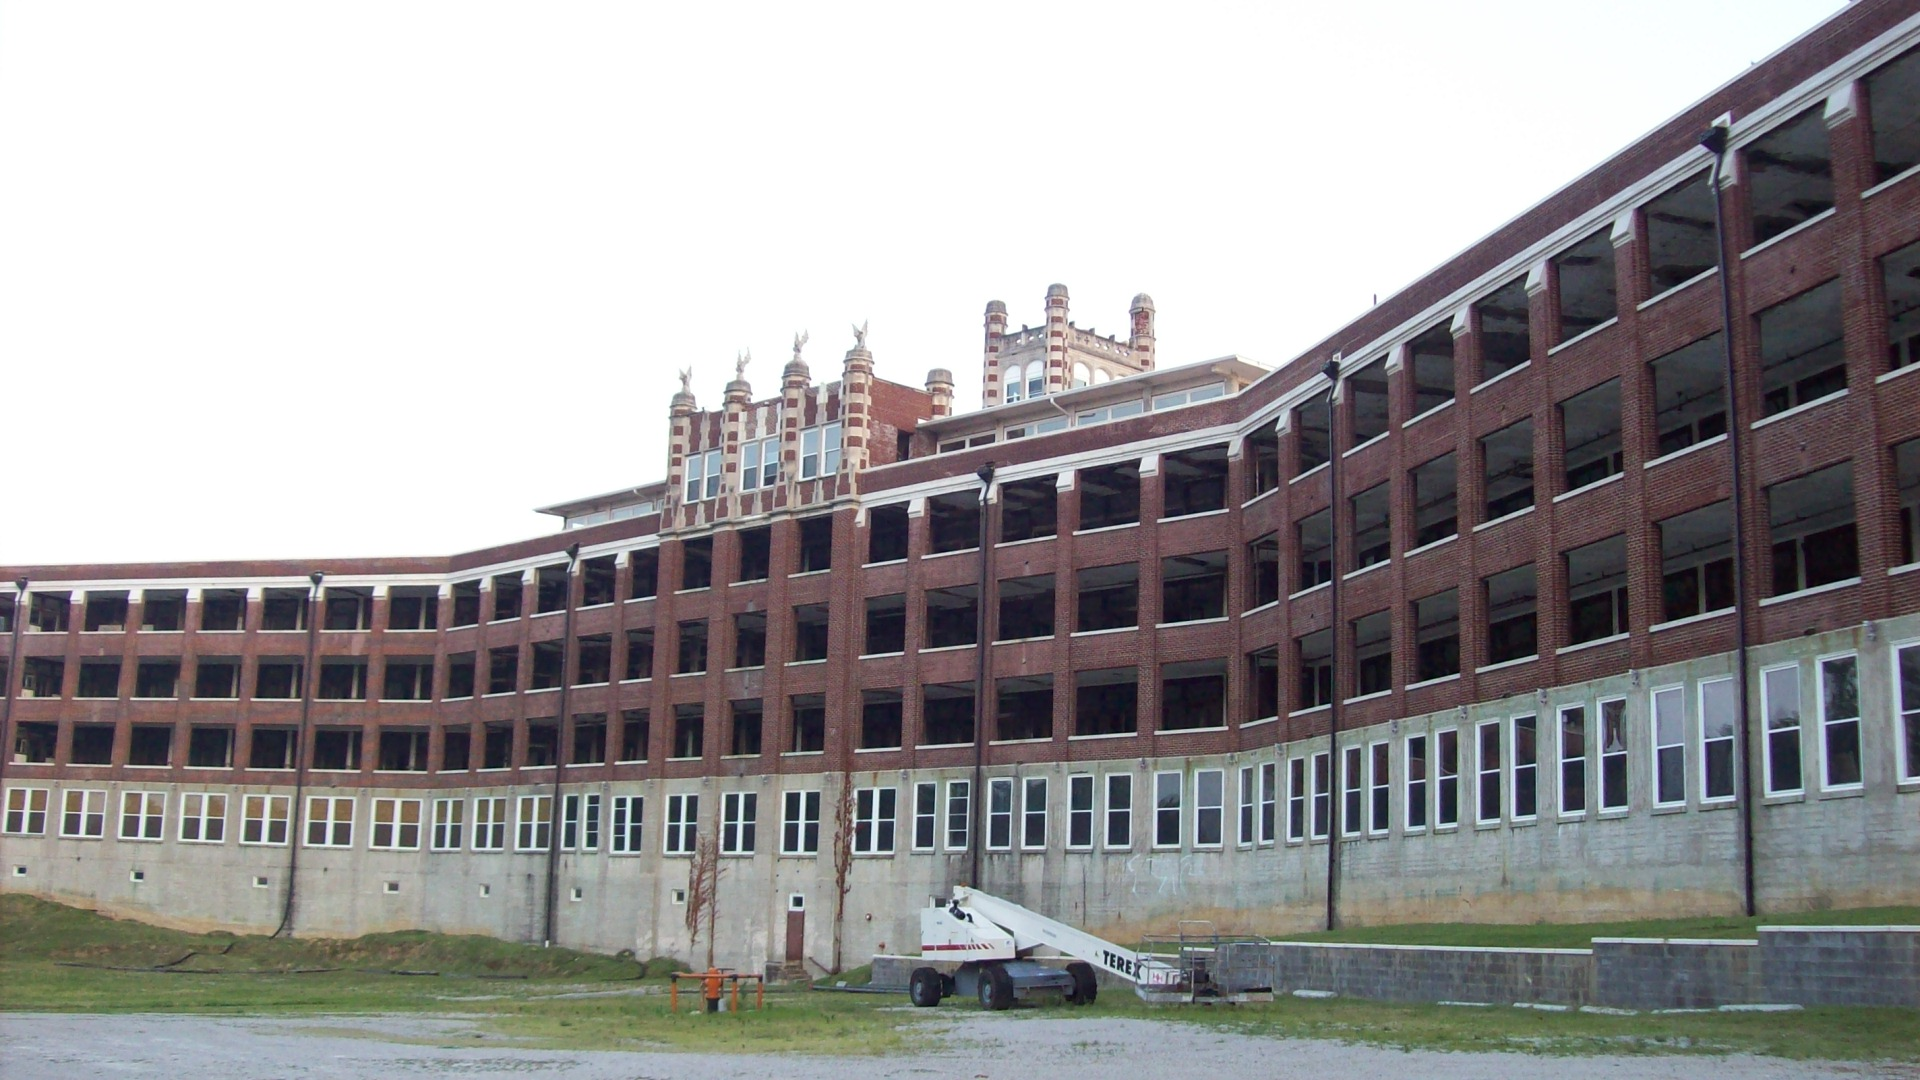 Do The Ton Waverly Hills Sanitorium